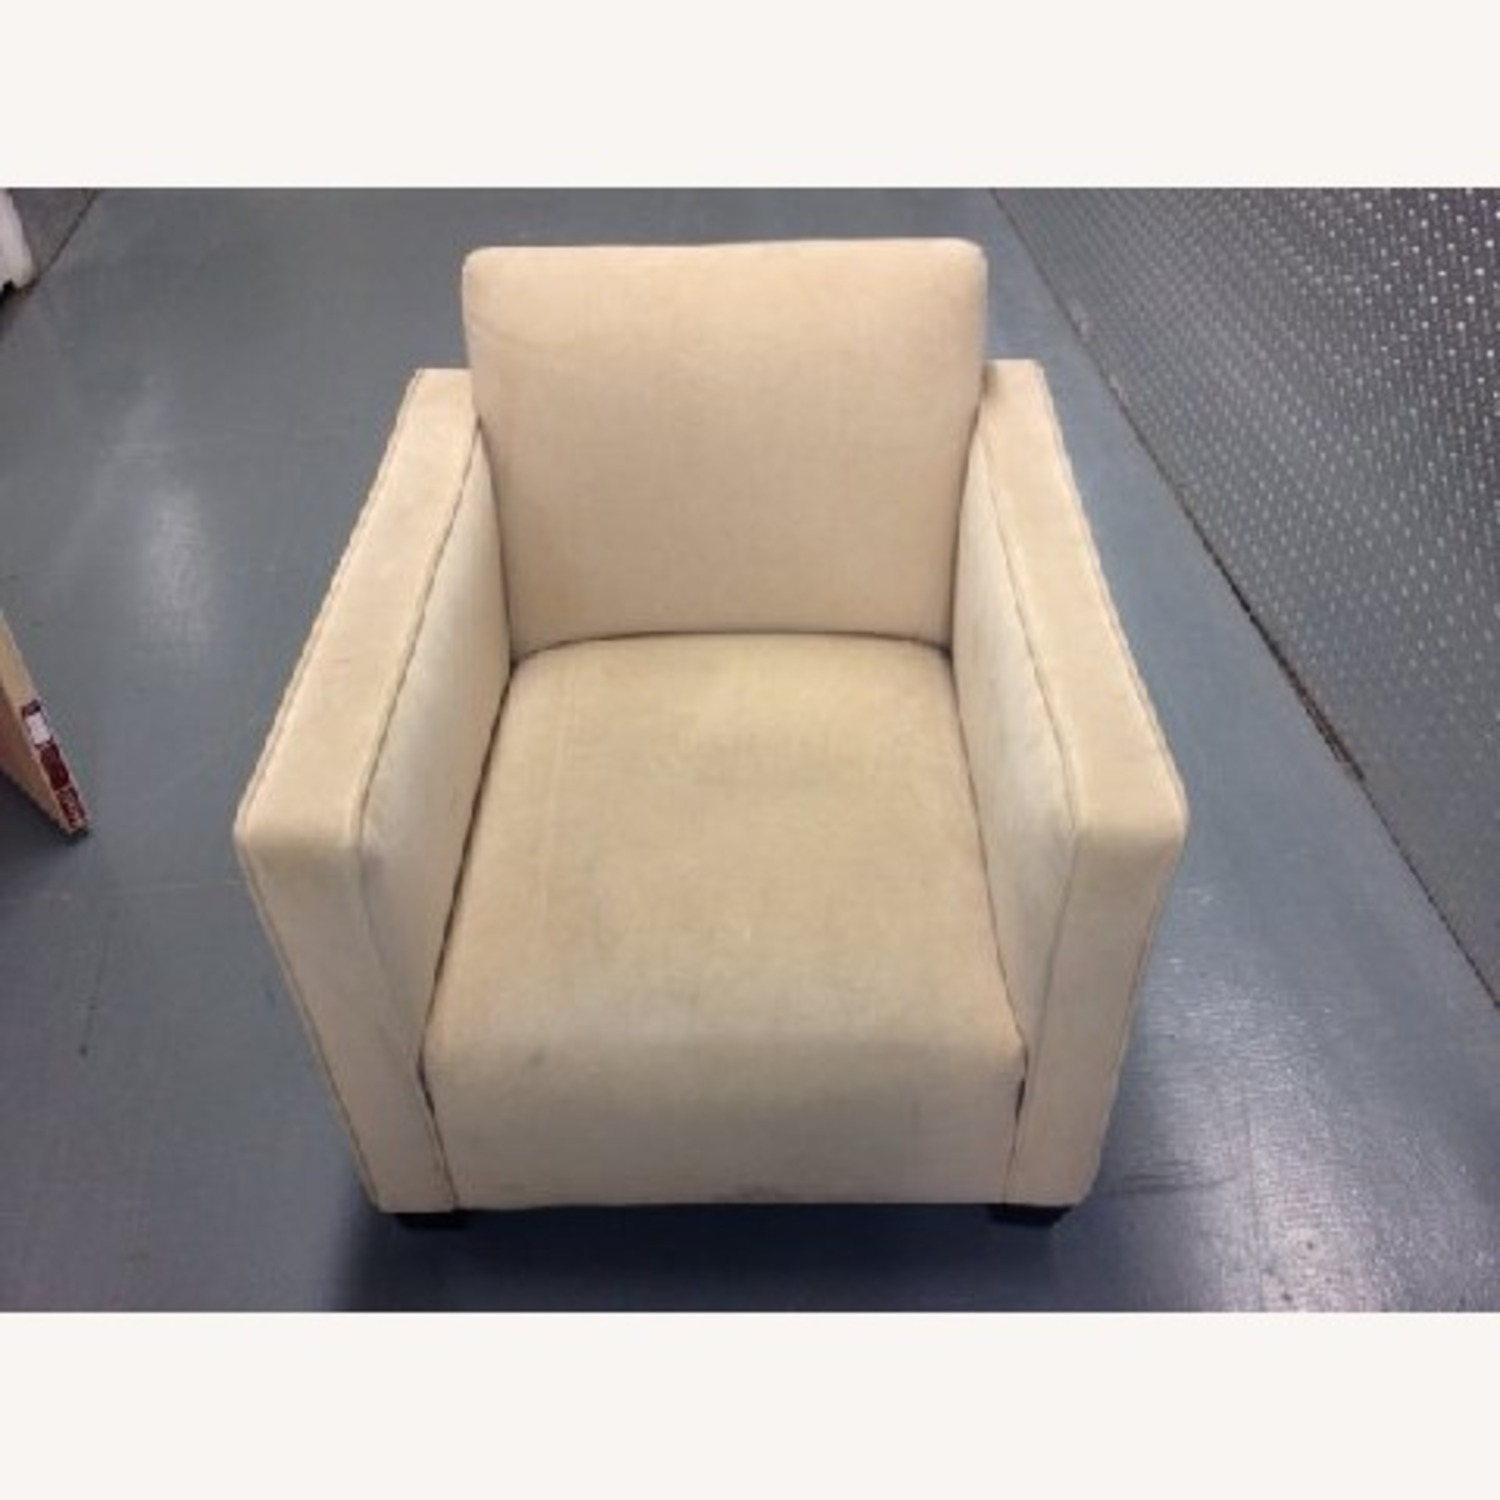 Cream Colored SUEDE Chair - image-1